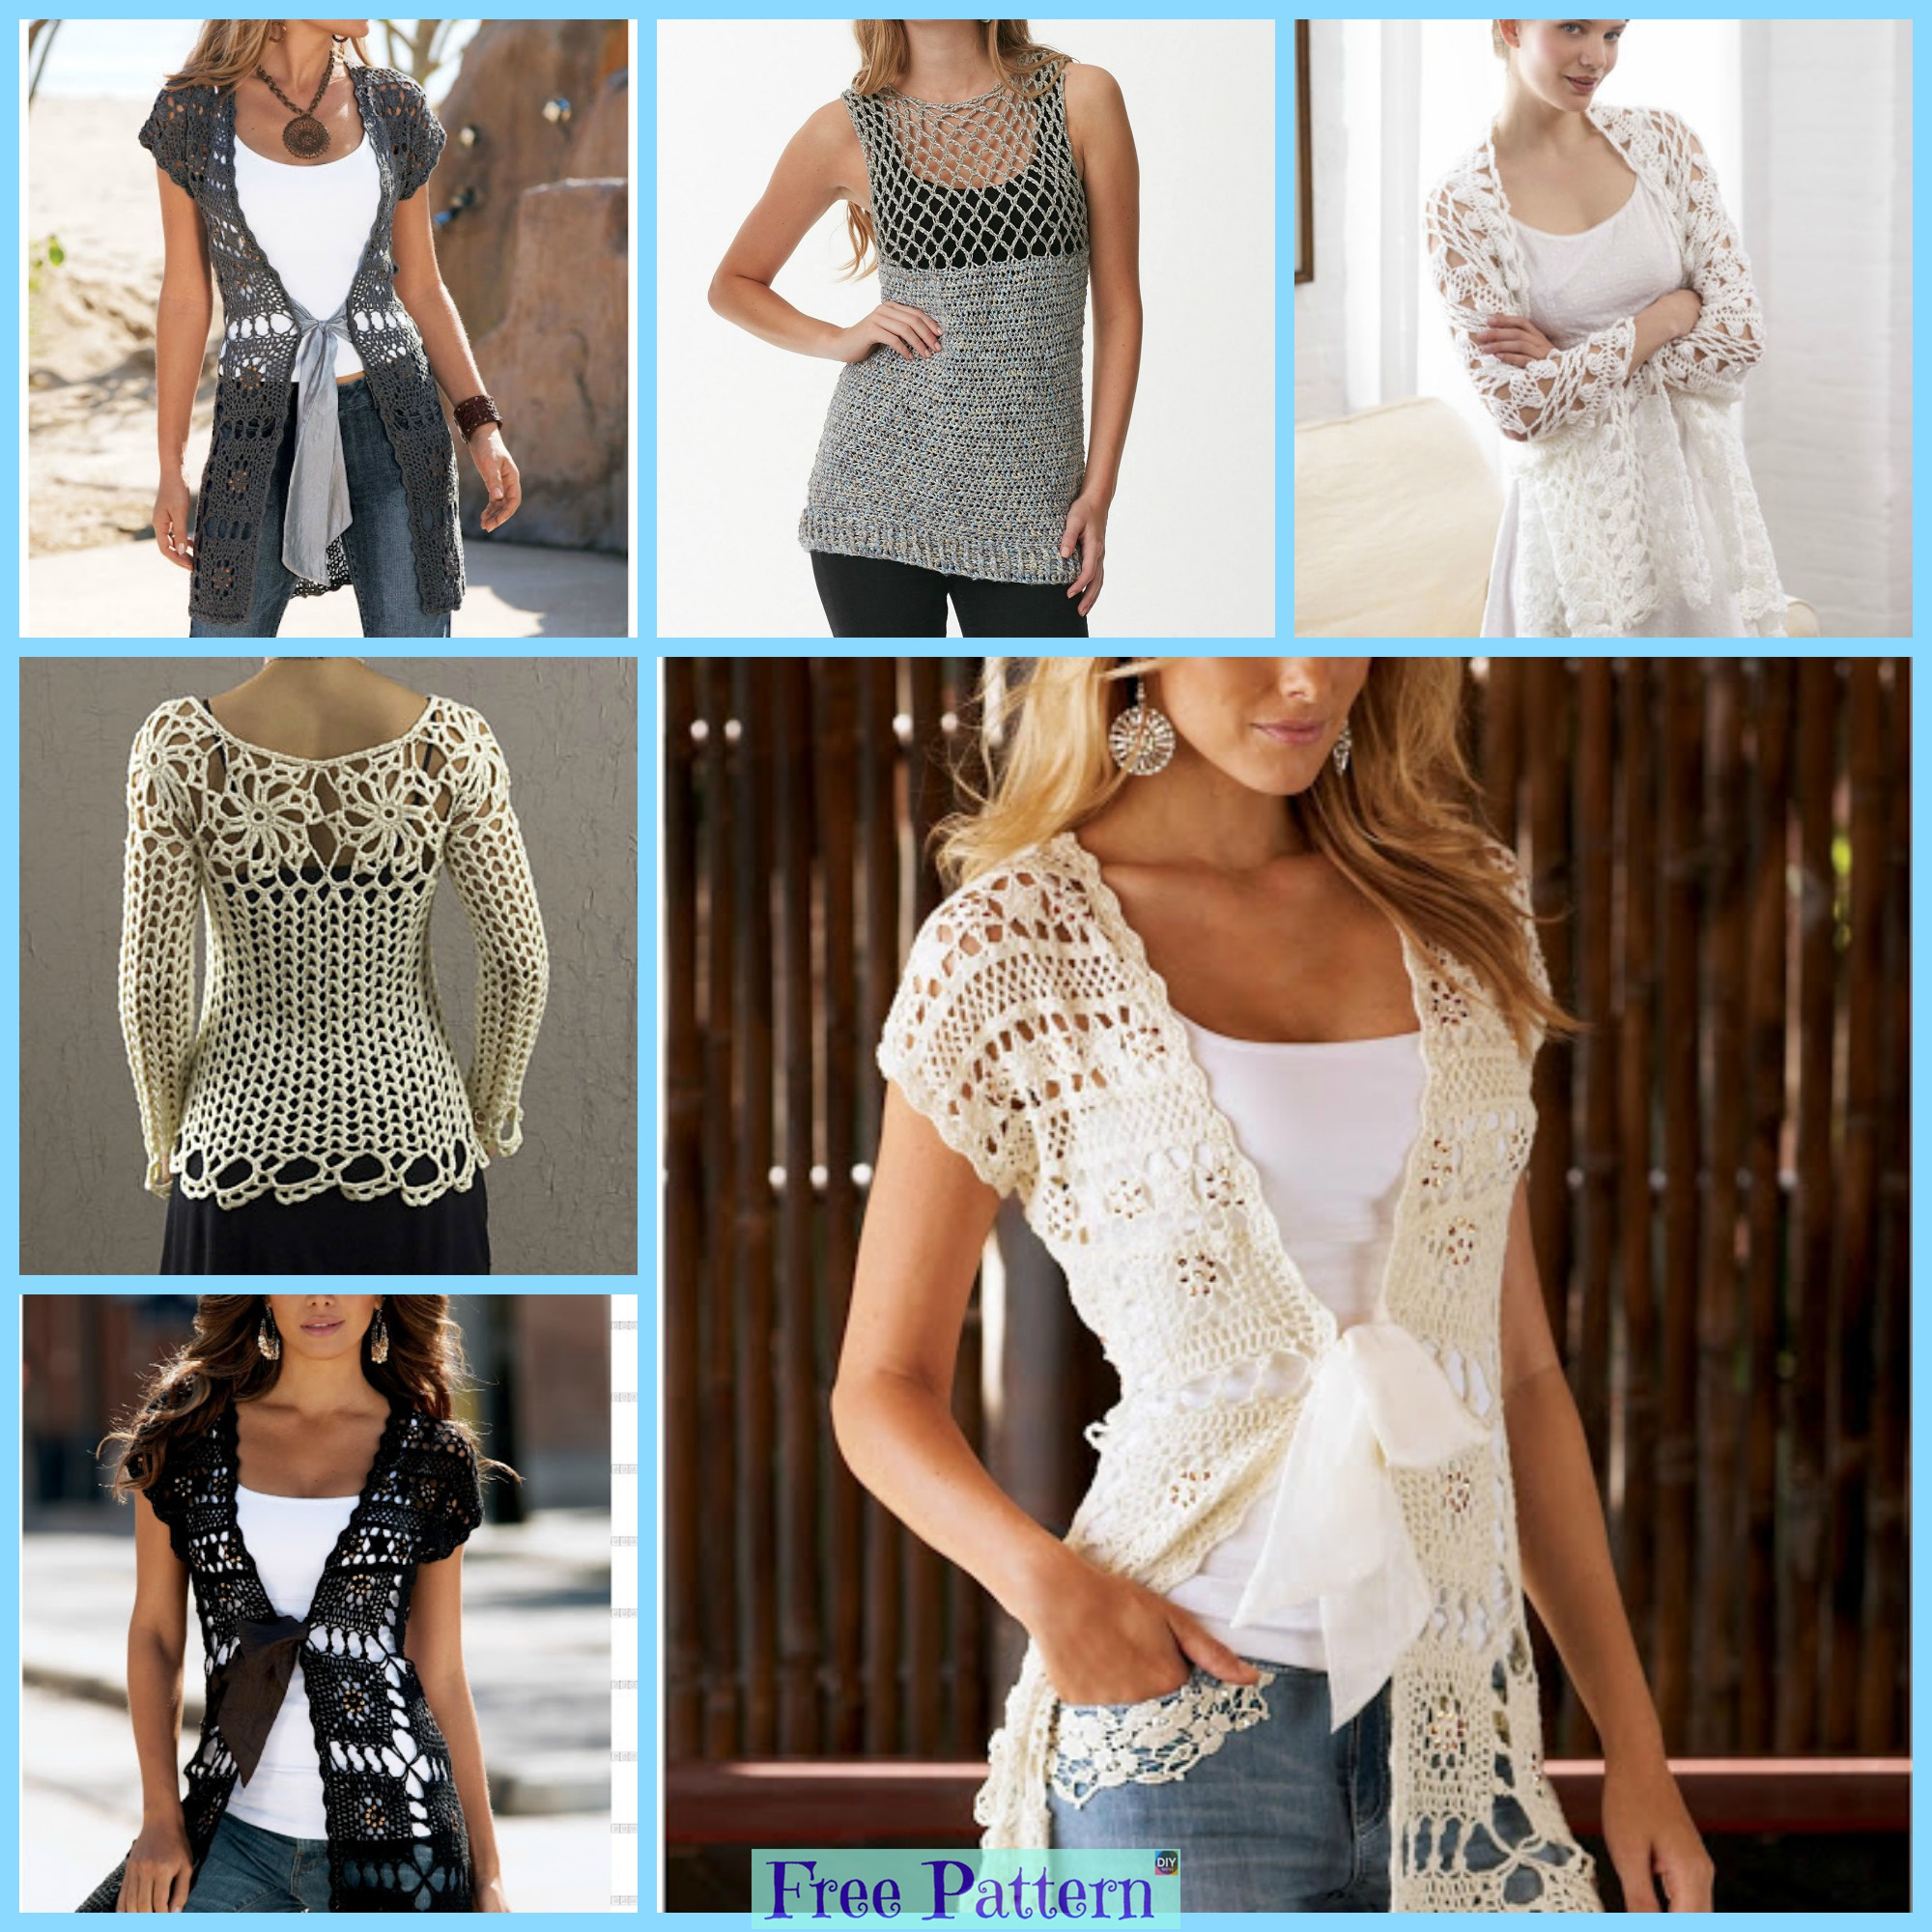 Crochet Lace Summer Tops Free Patterns Diy 4 Ever